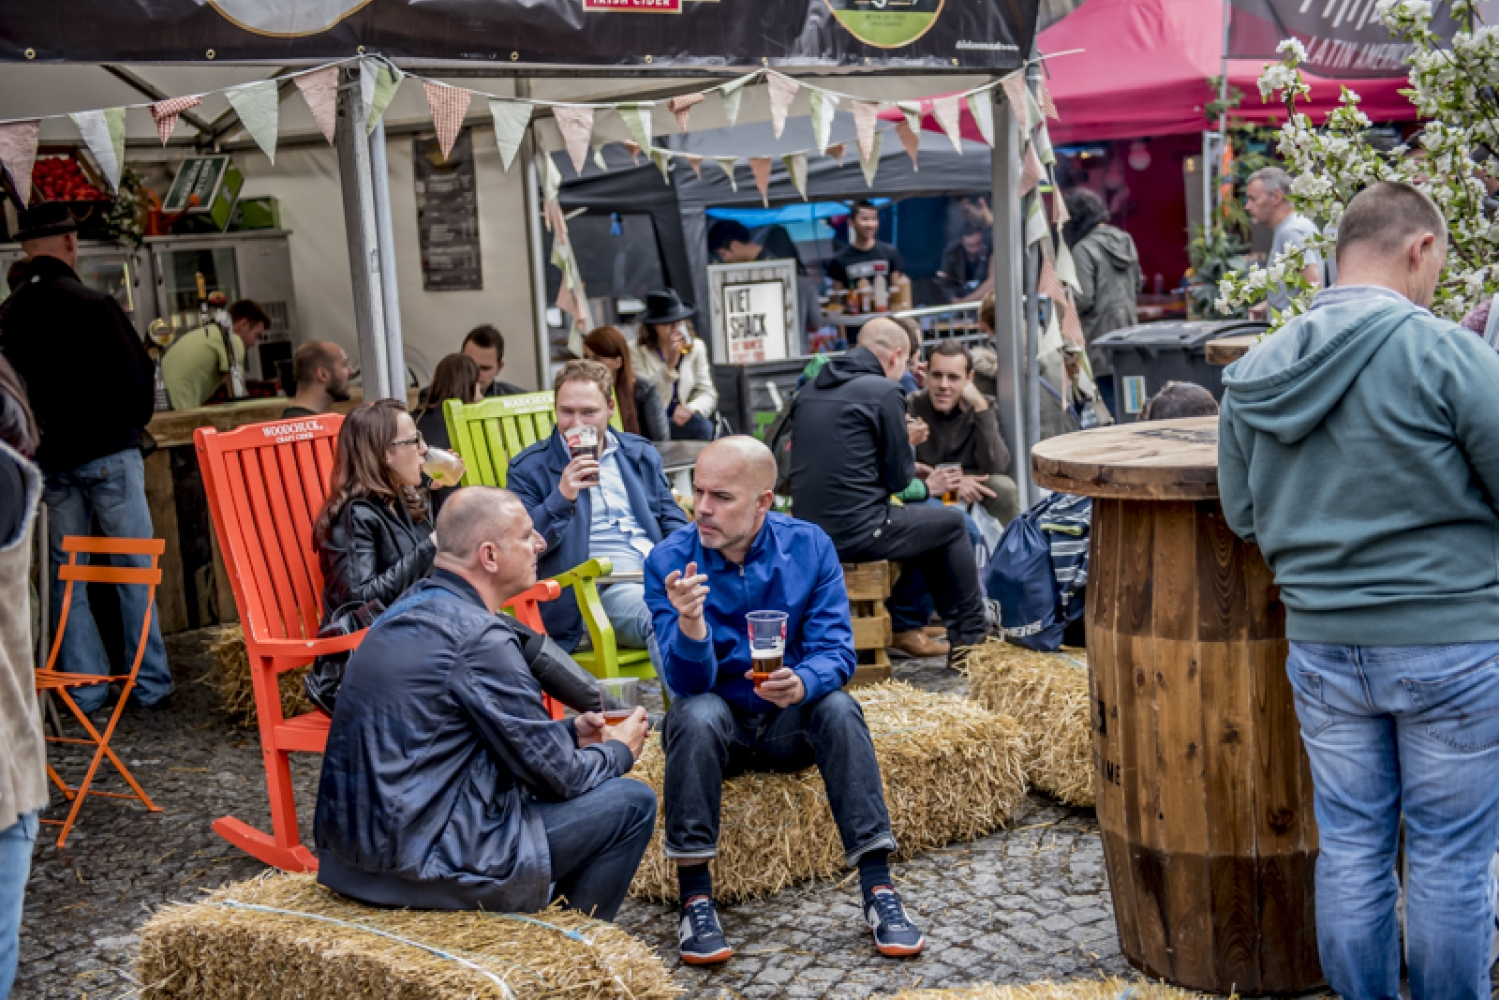 Manchester Food And Drink Festival 21